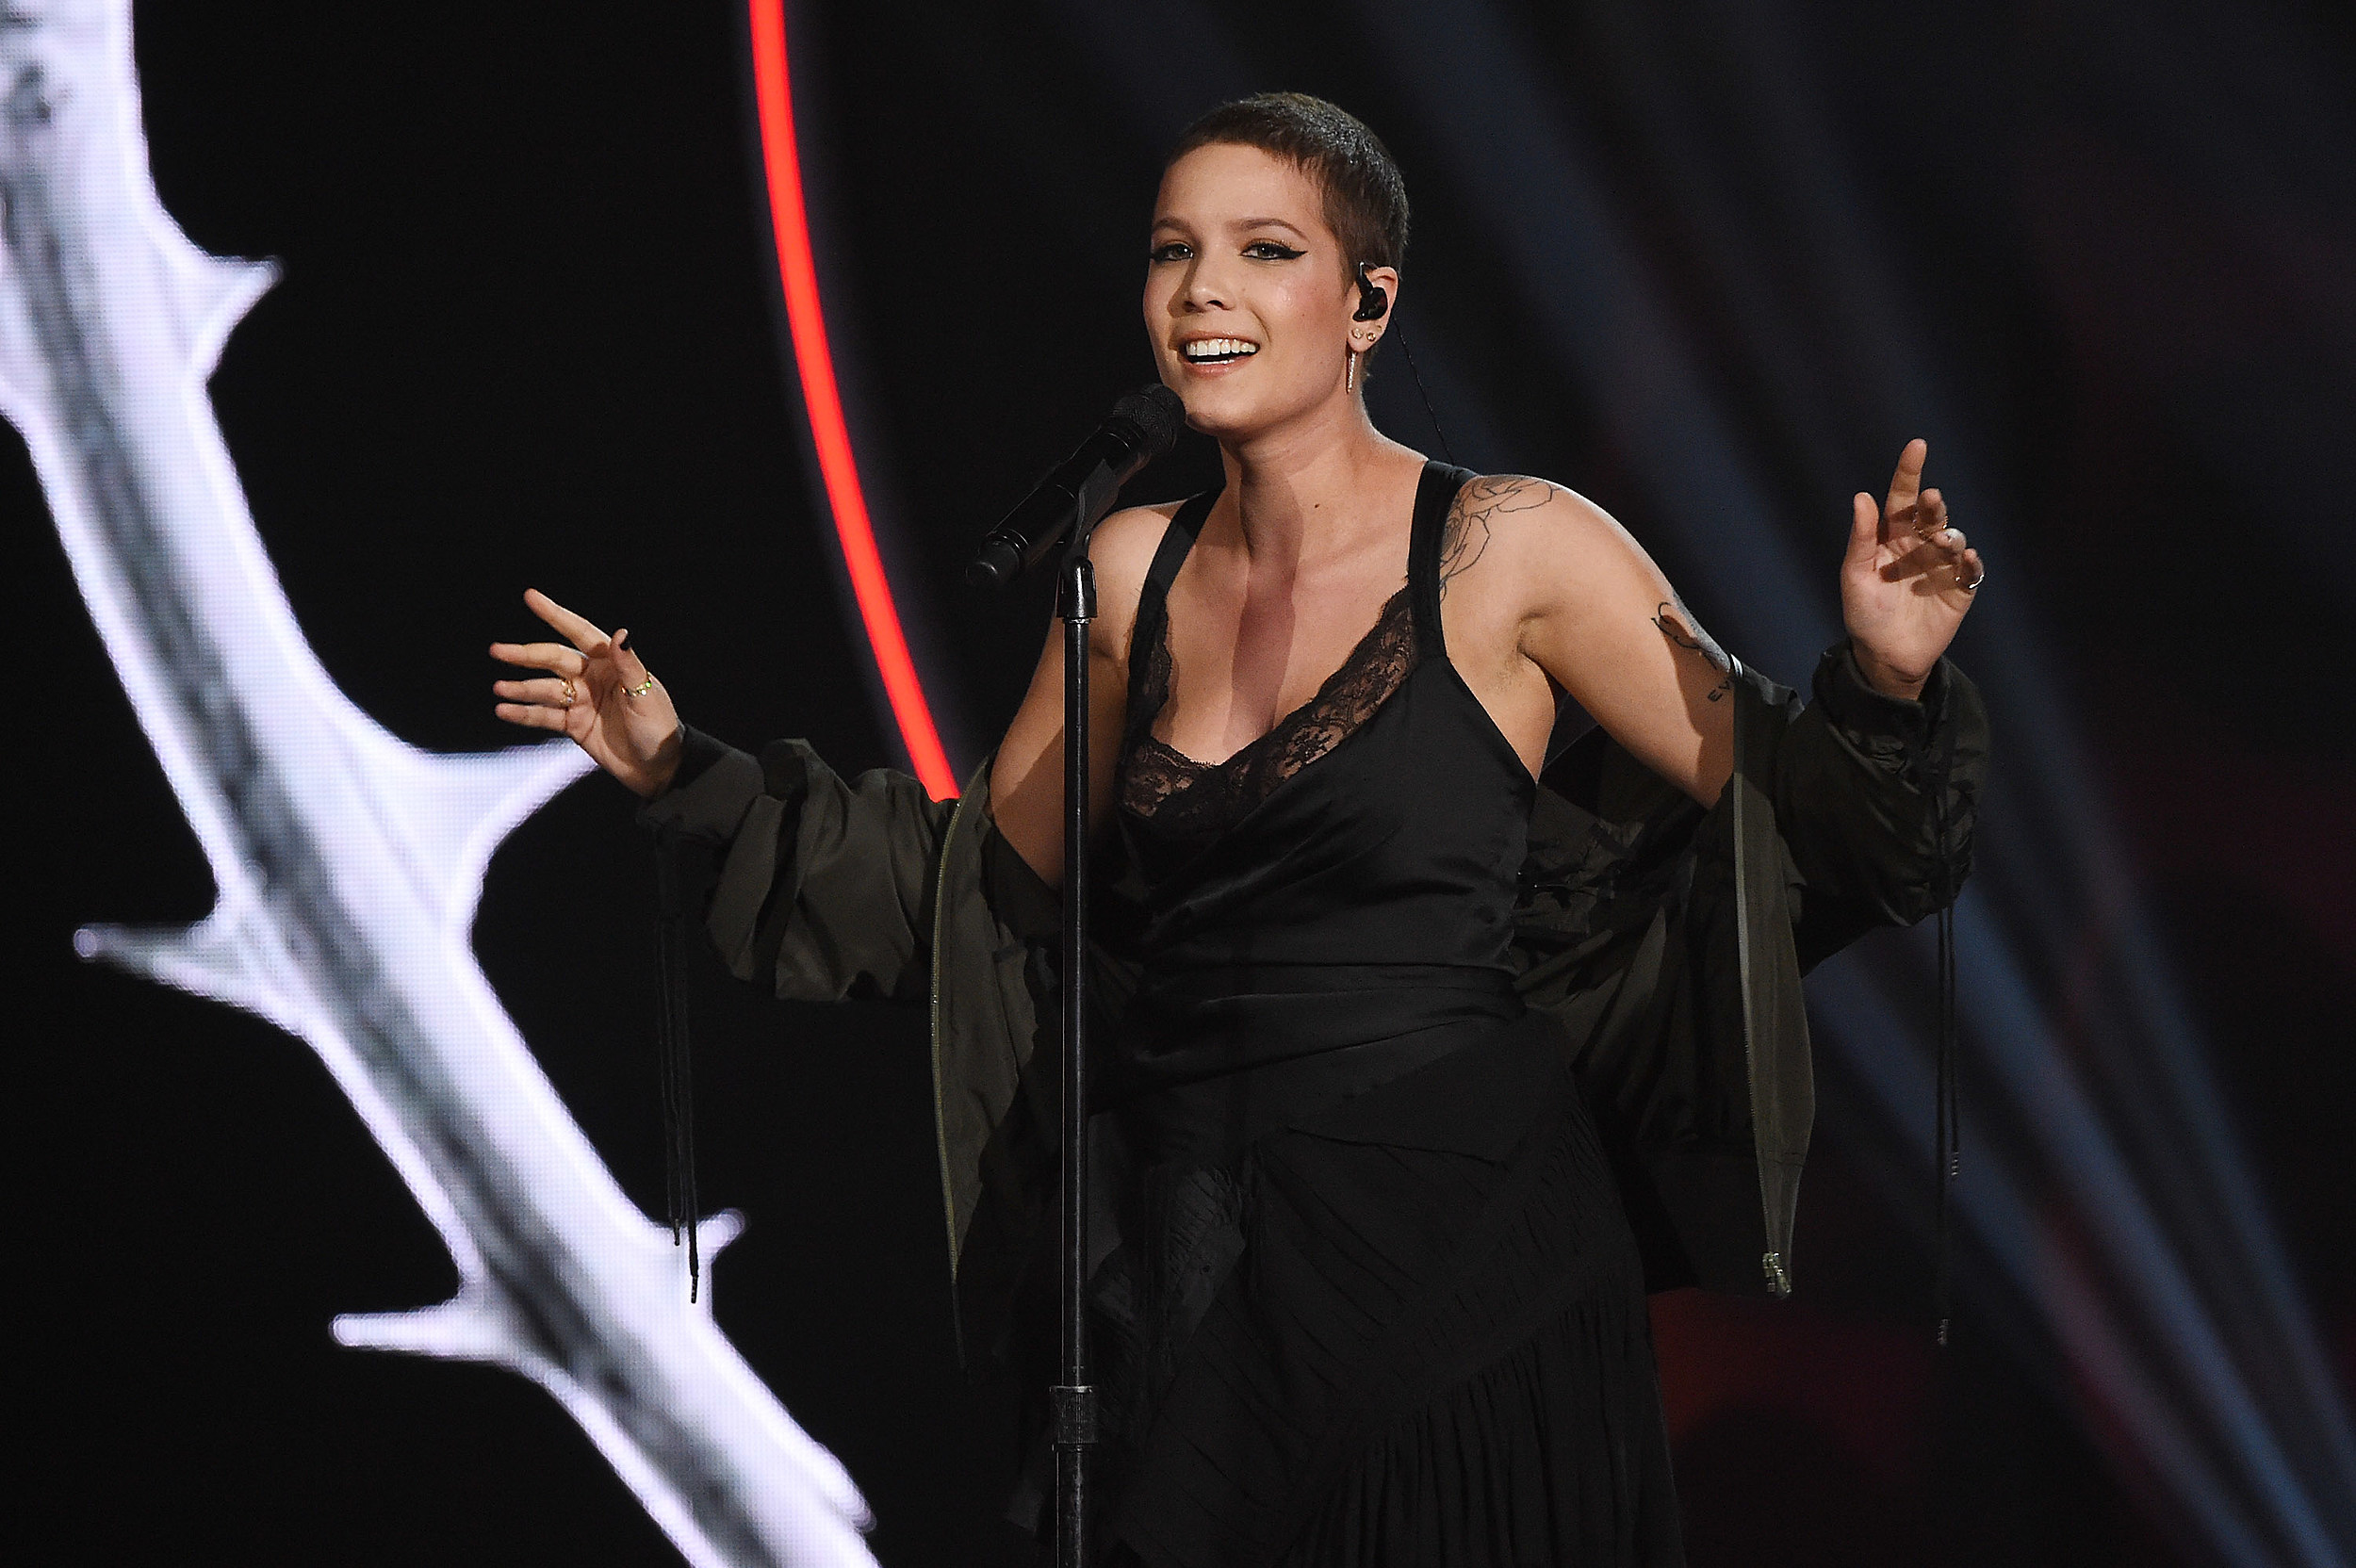 Halsey Announces 2017 Tour With Charli Xcx Partynextdoor See The